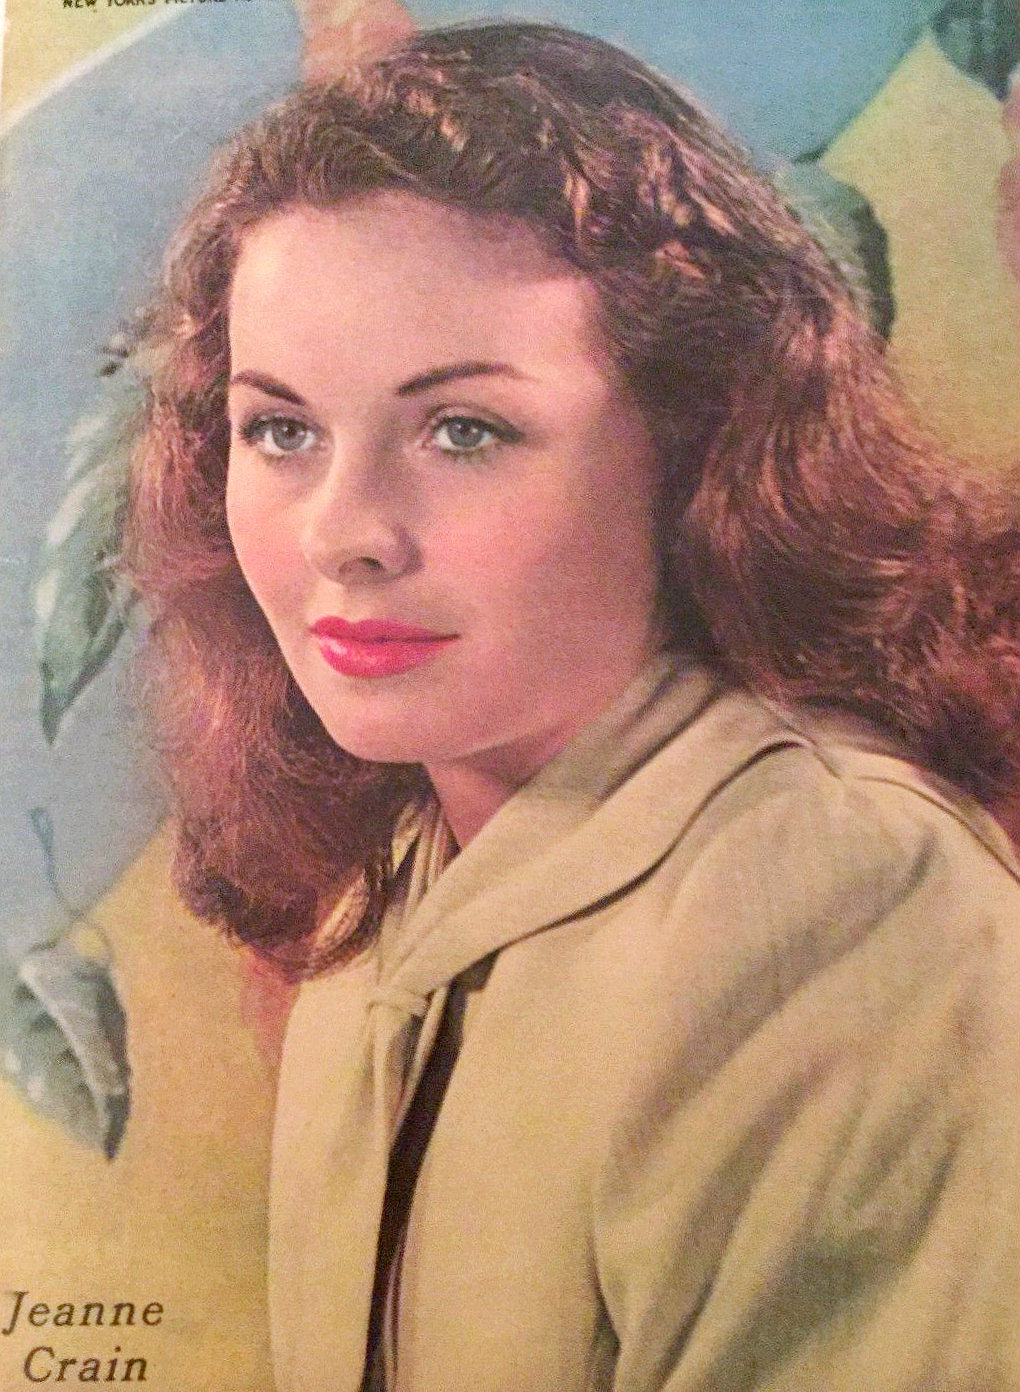 Photo of Jeanne Crain: American actress